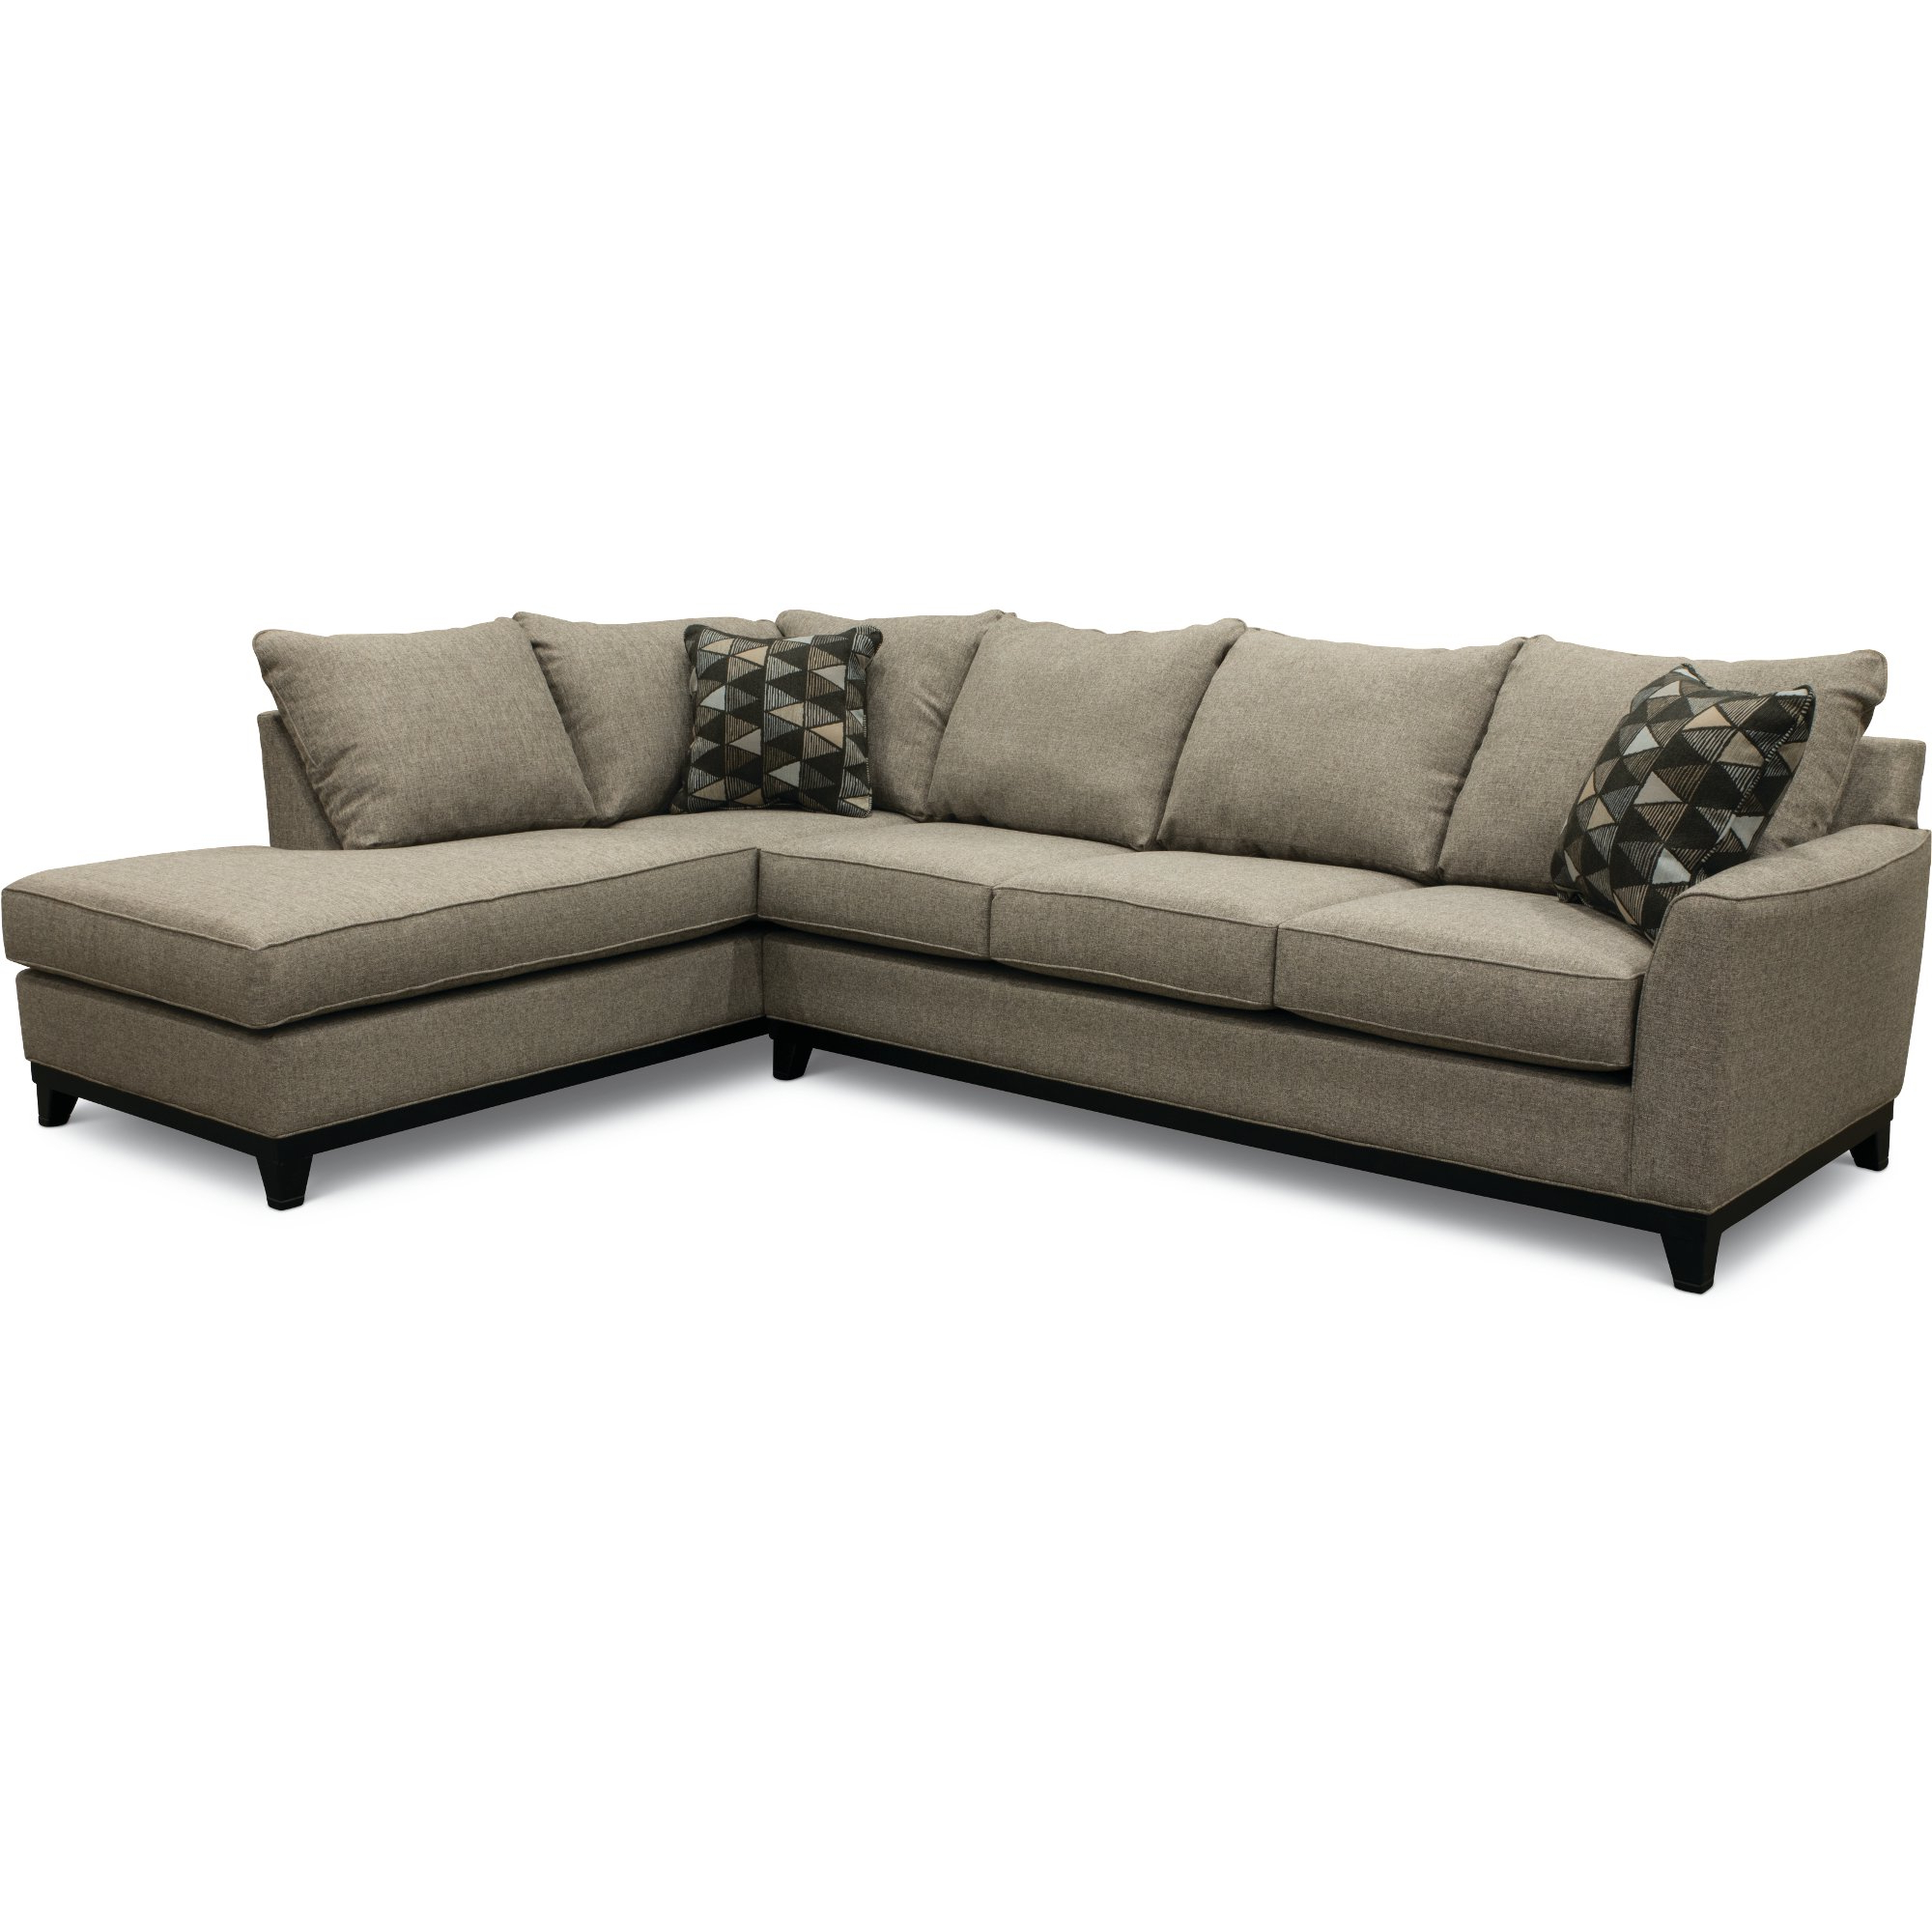 Trendy Casual Contemporary Slate Gray 2 Piece Sectional Sofa – Emerson (View 17 of 20)